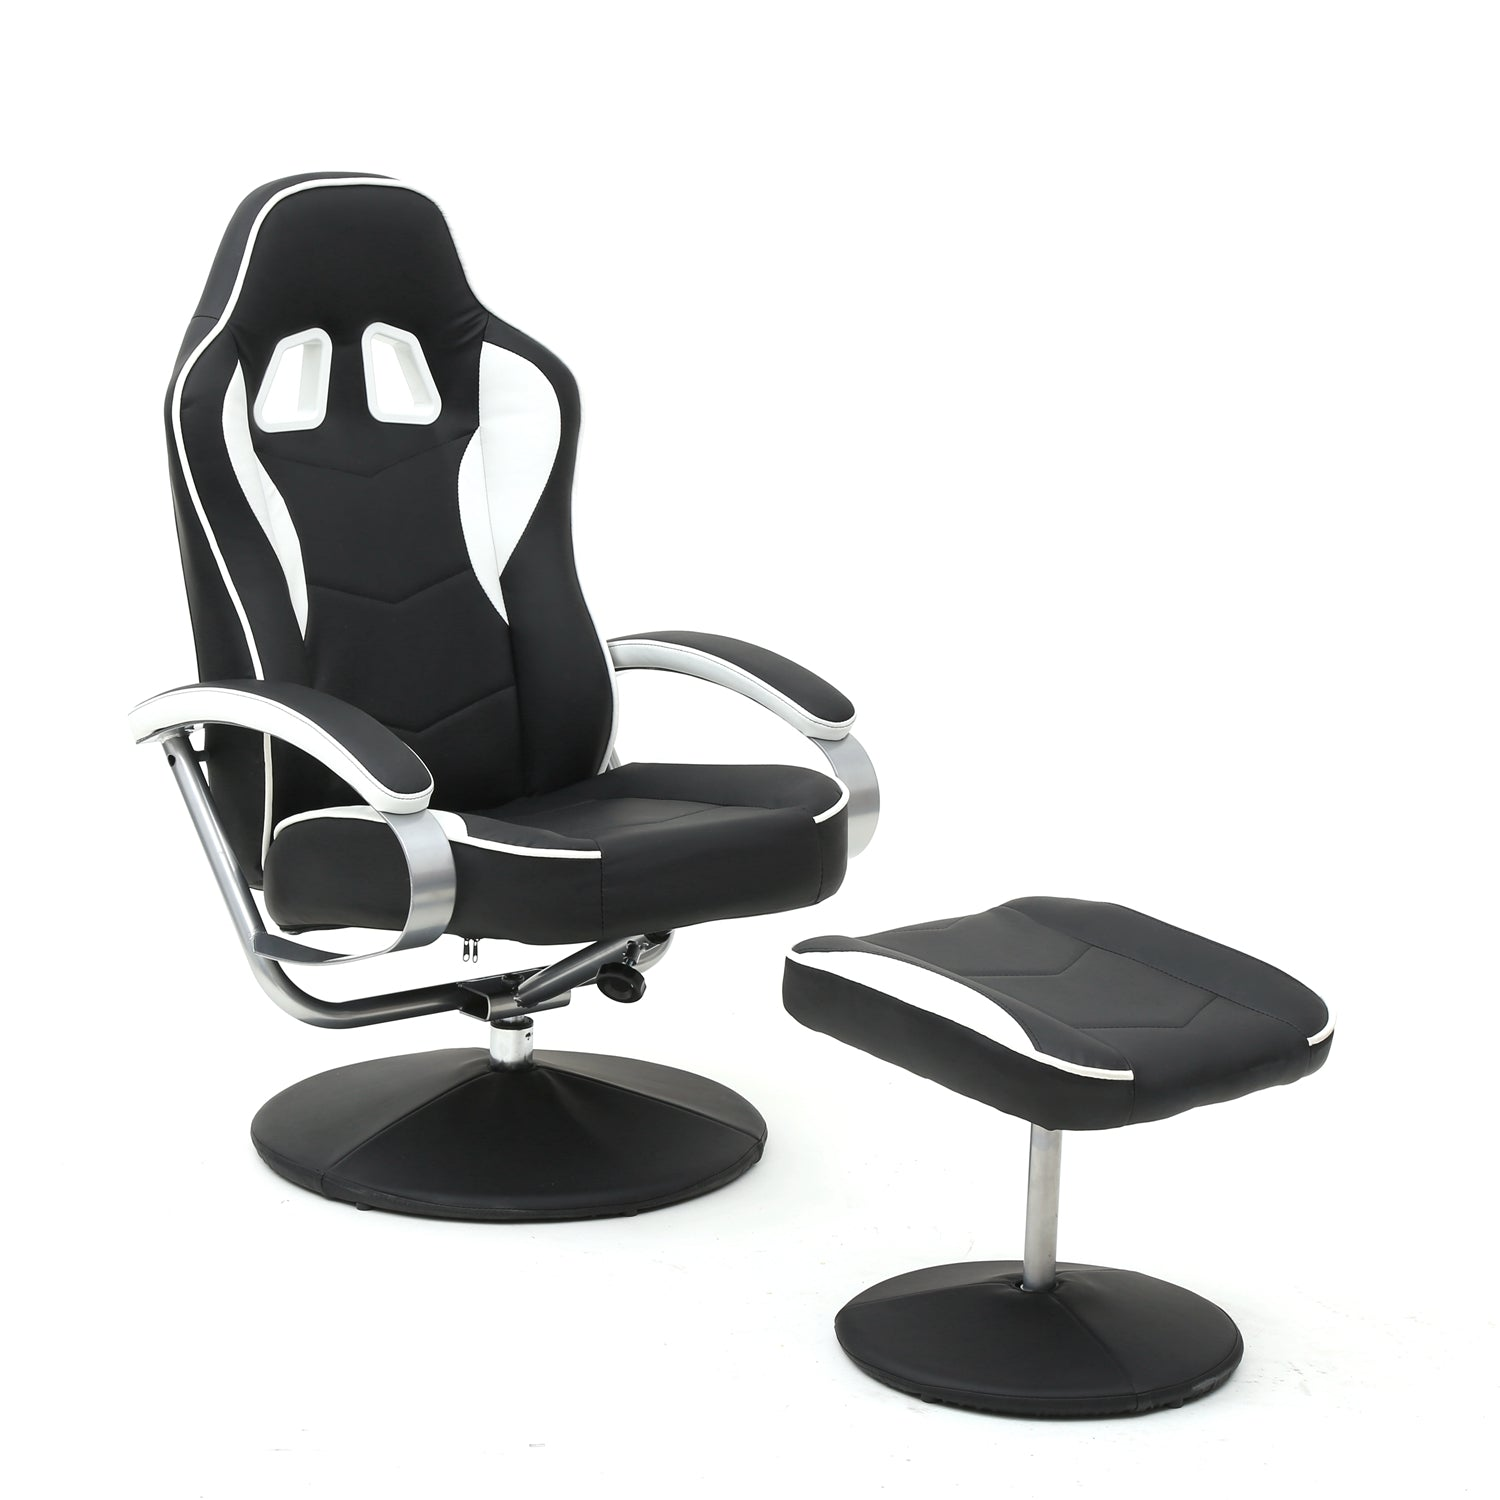 Racing Recliner Chair Set 360 Degree Swivel With Ottoman for Video Game Office Home Theater